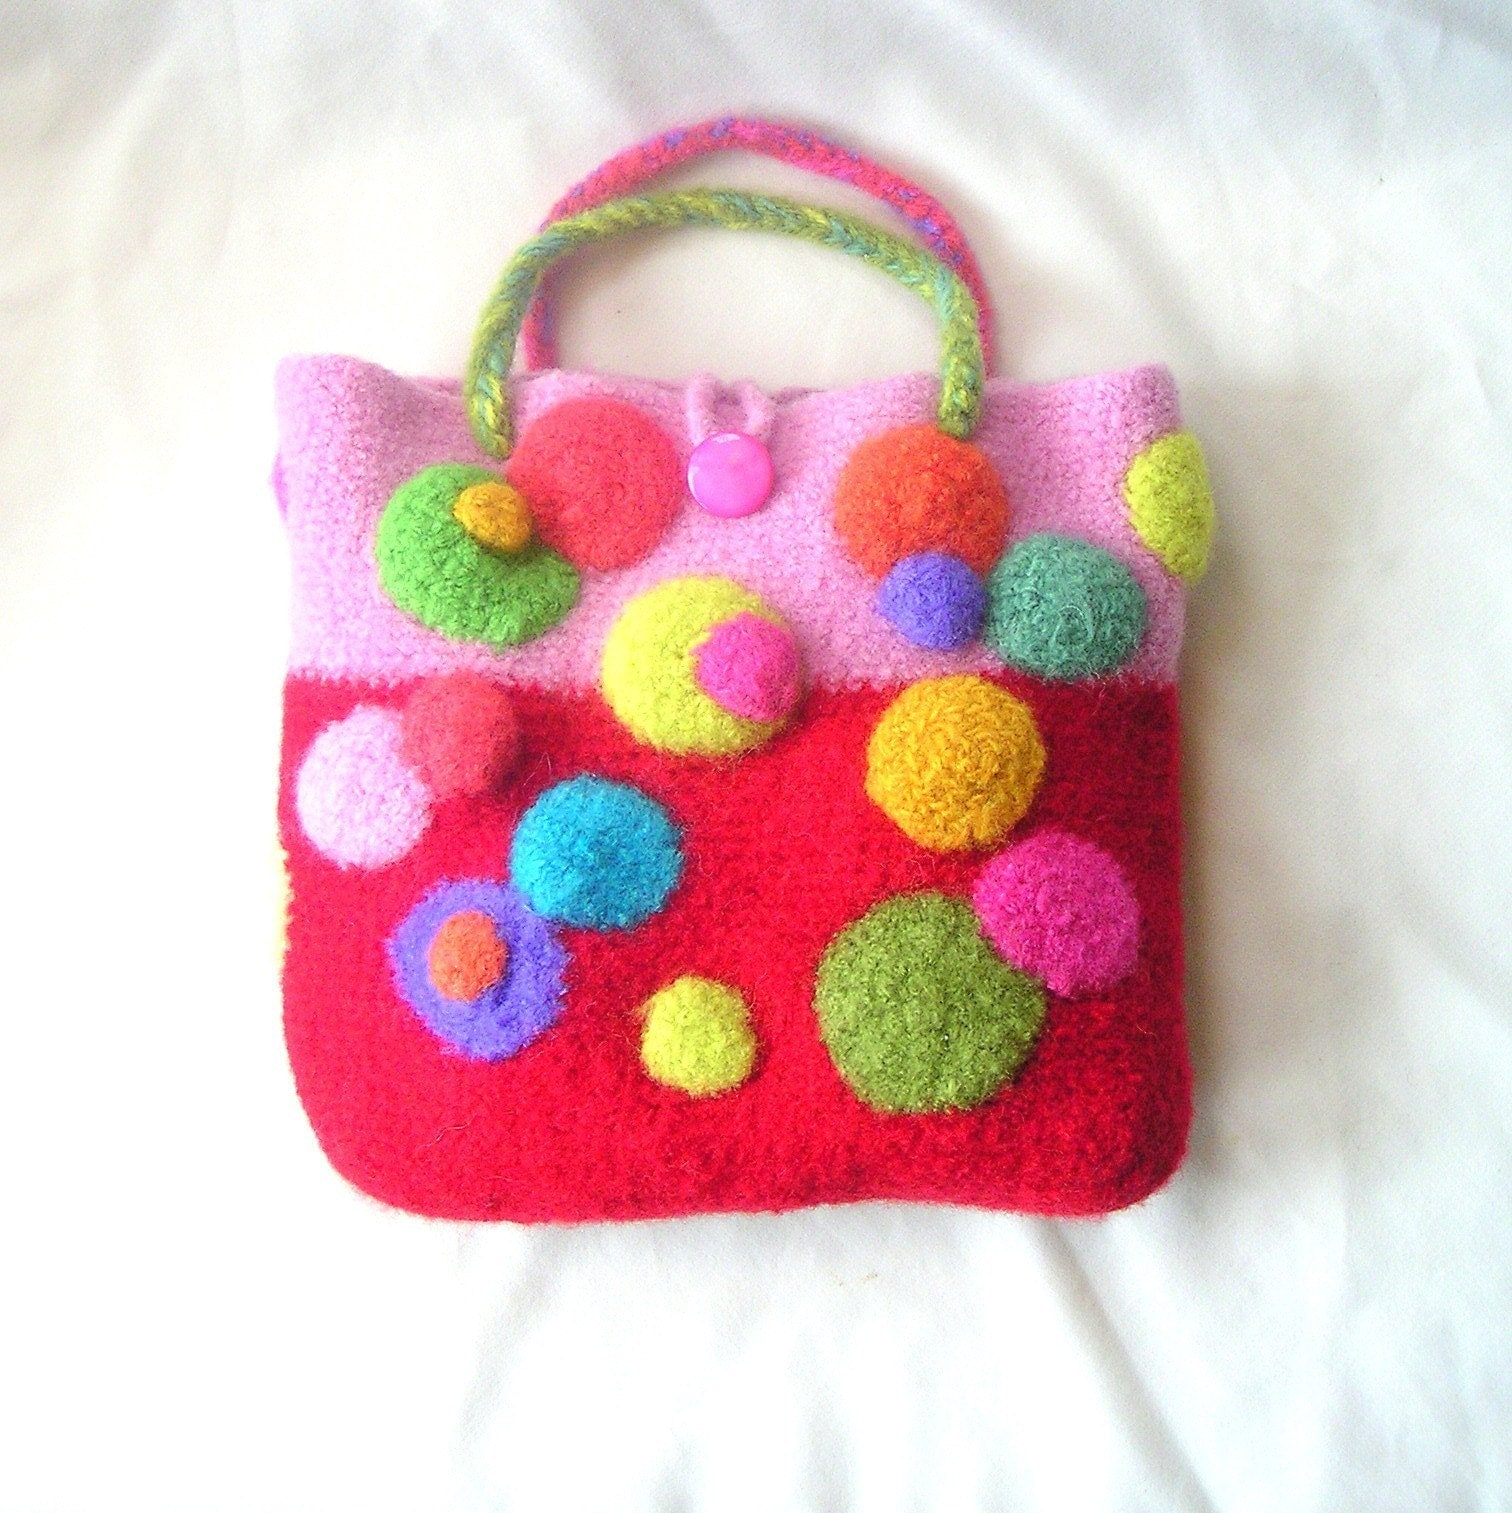 Crochet Spot » Blog Archive » Free Crochet Pattern: Felted Bowl